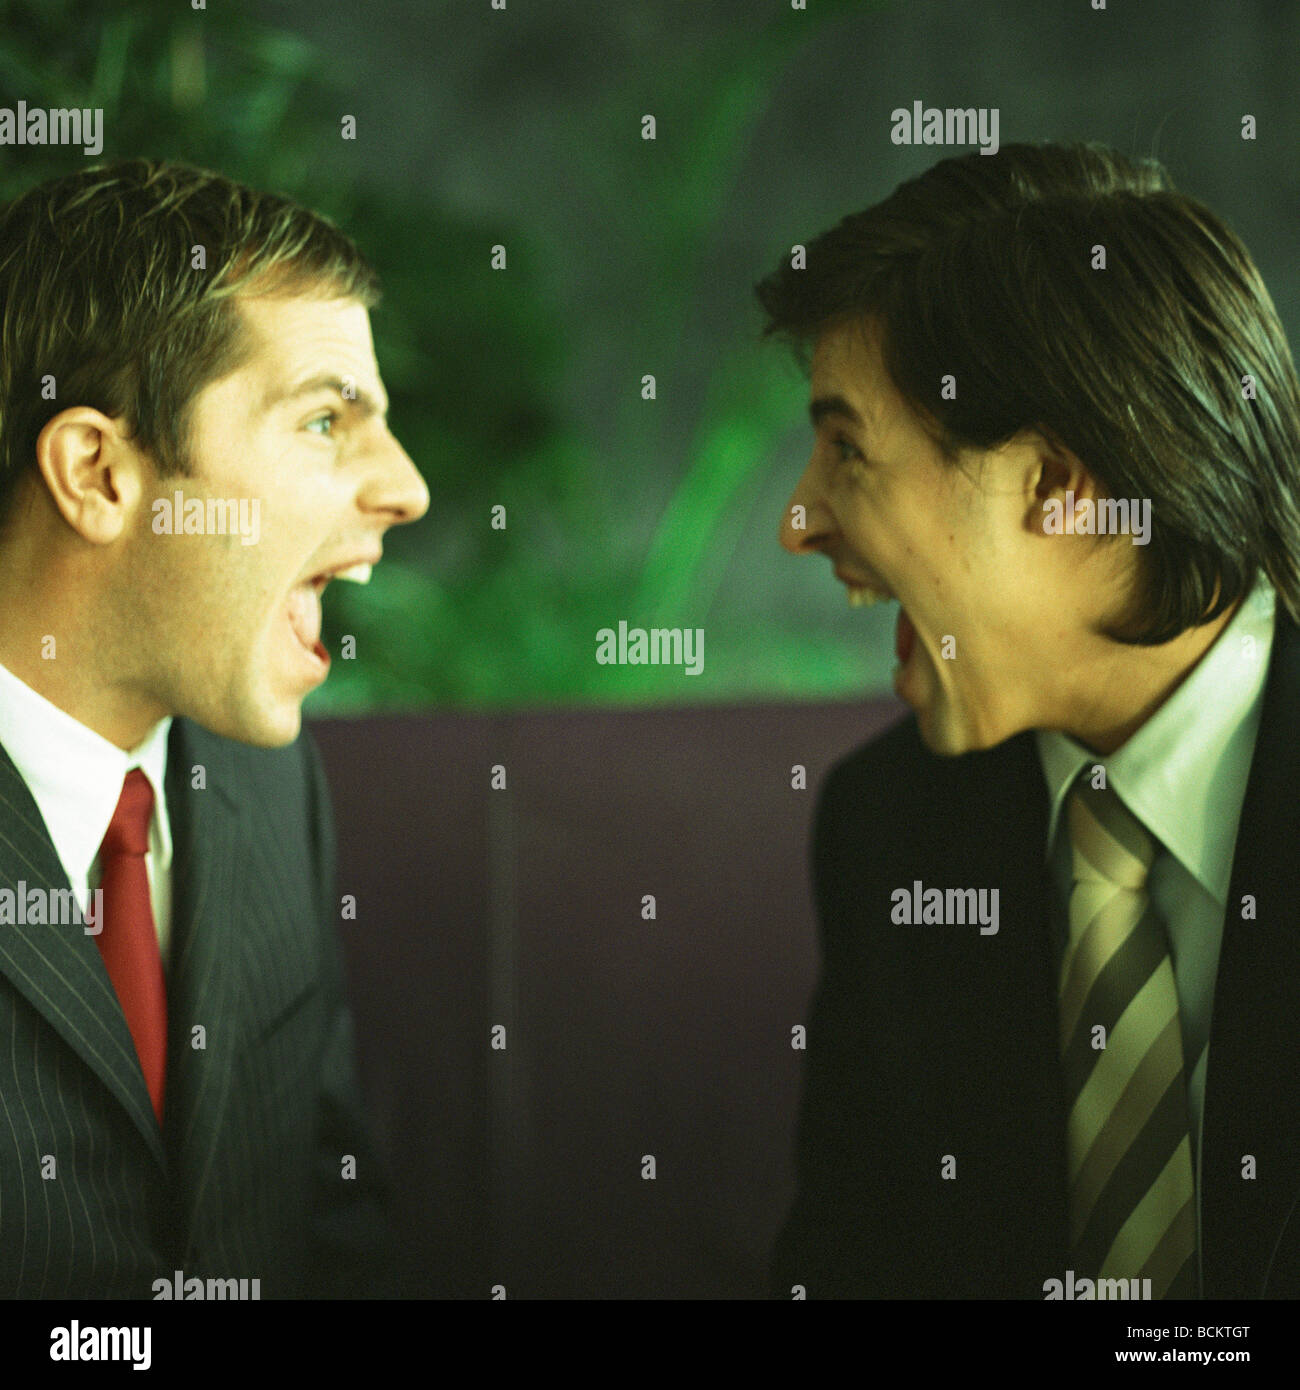 Businessmen yelling face to face - Stock Image